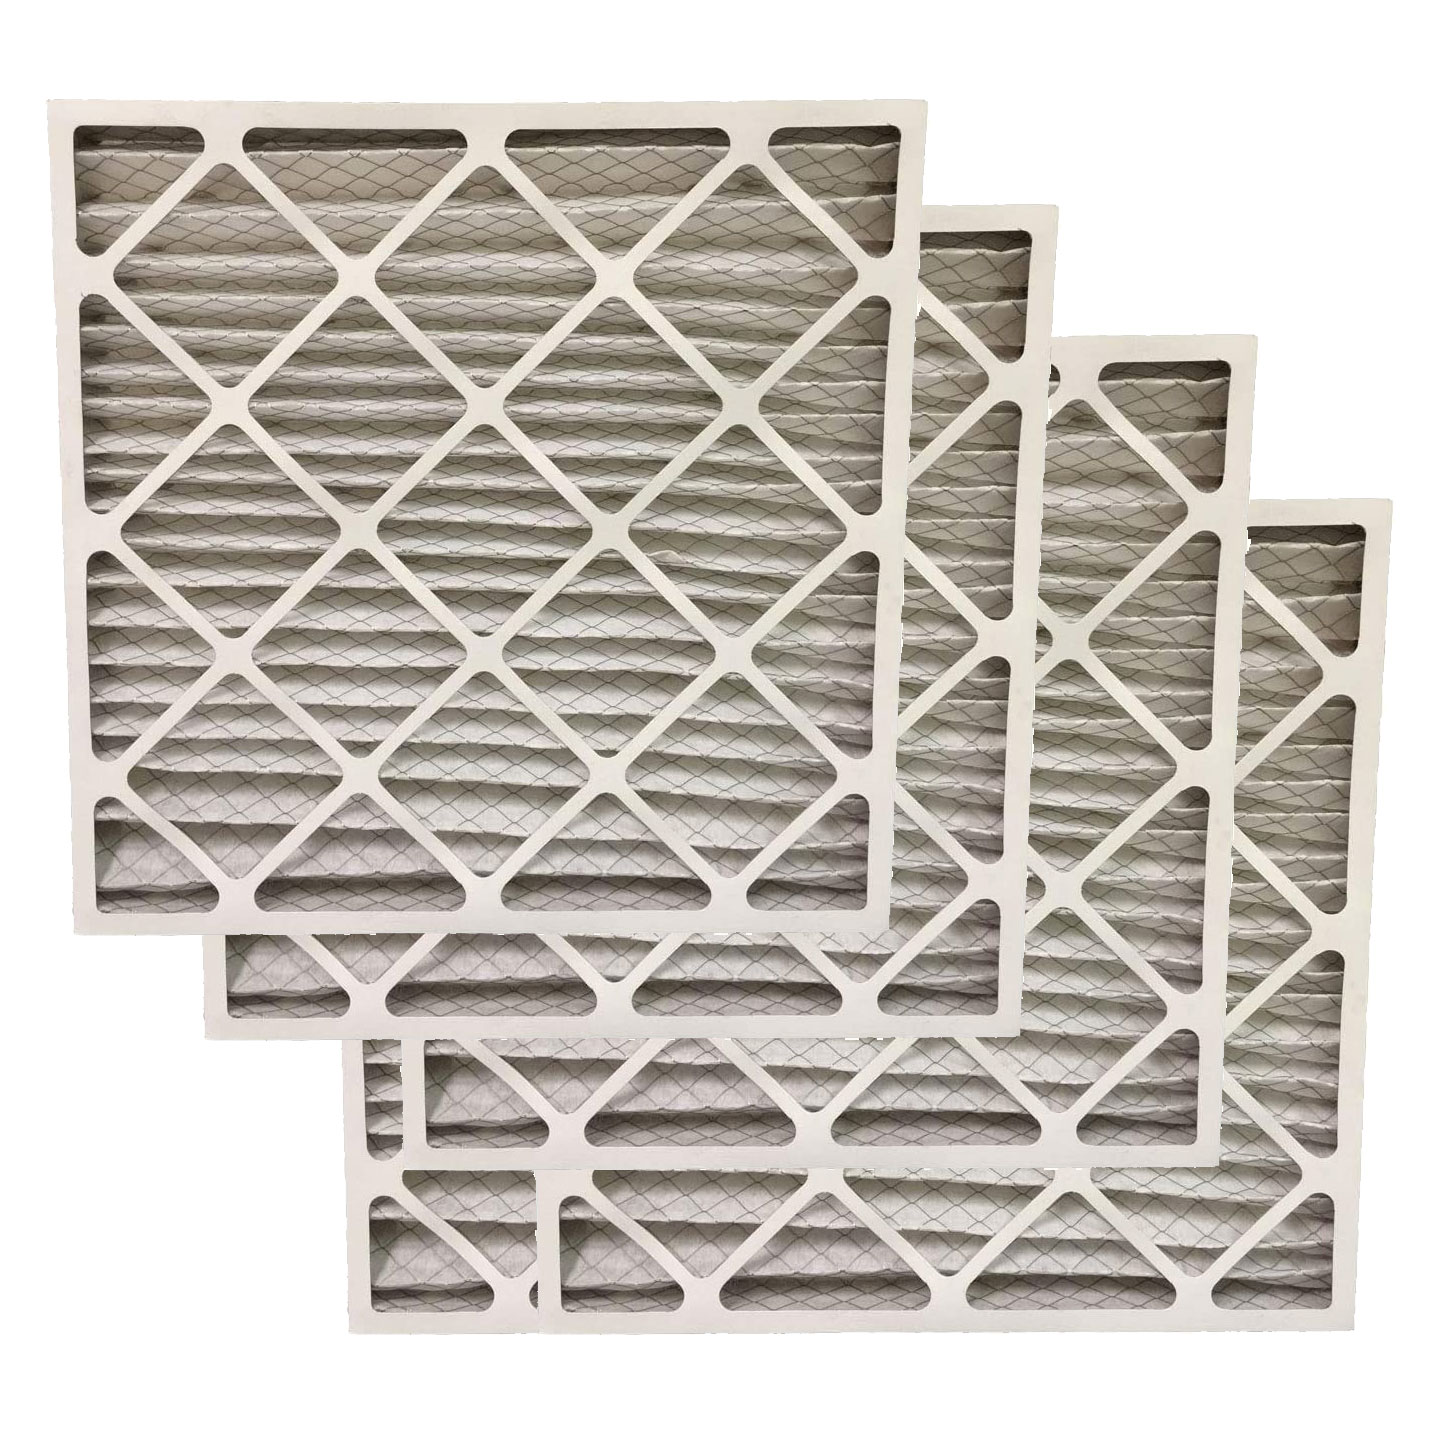 Clean Storm PLTA18181 Pre Filter 4 Pack for Super Scrub 500 Air Scrubbers 17-7/8 x 17-7/8 x .8 (455 X 455 X 22)  Merv 8